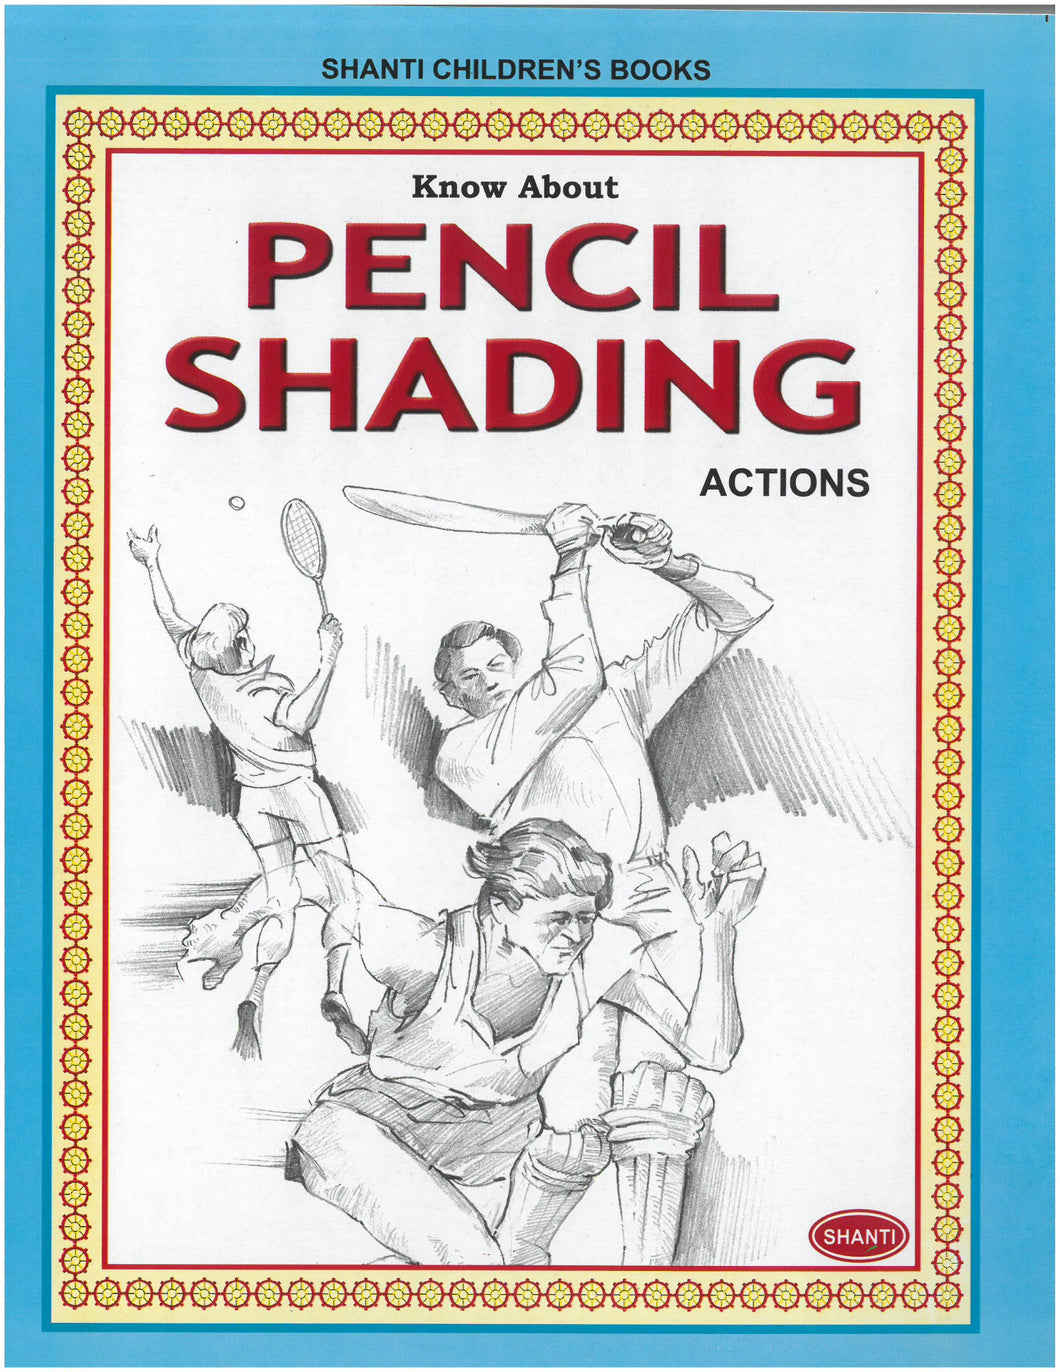 Pencil Shading Book - Know about Pencil Shading (Actions)